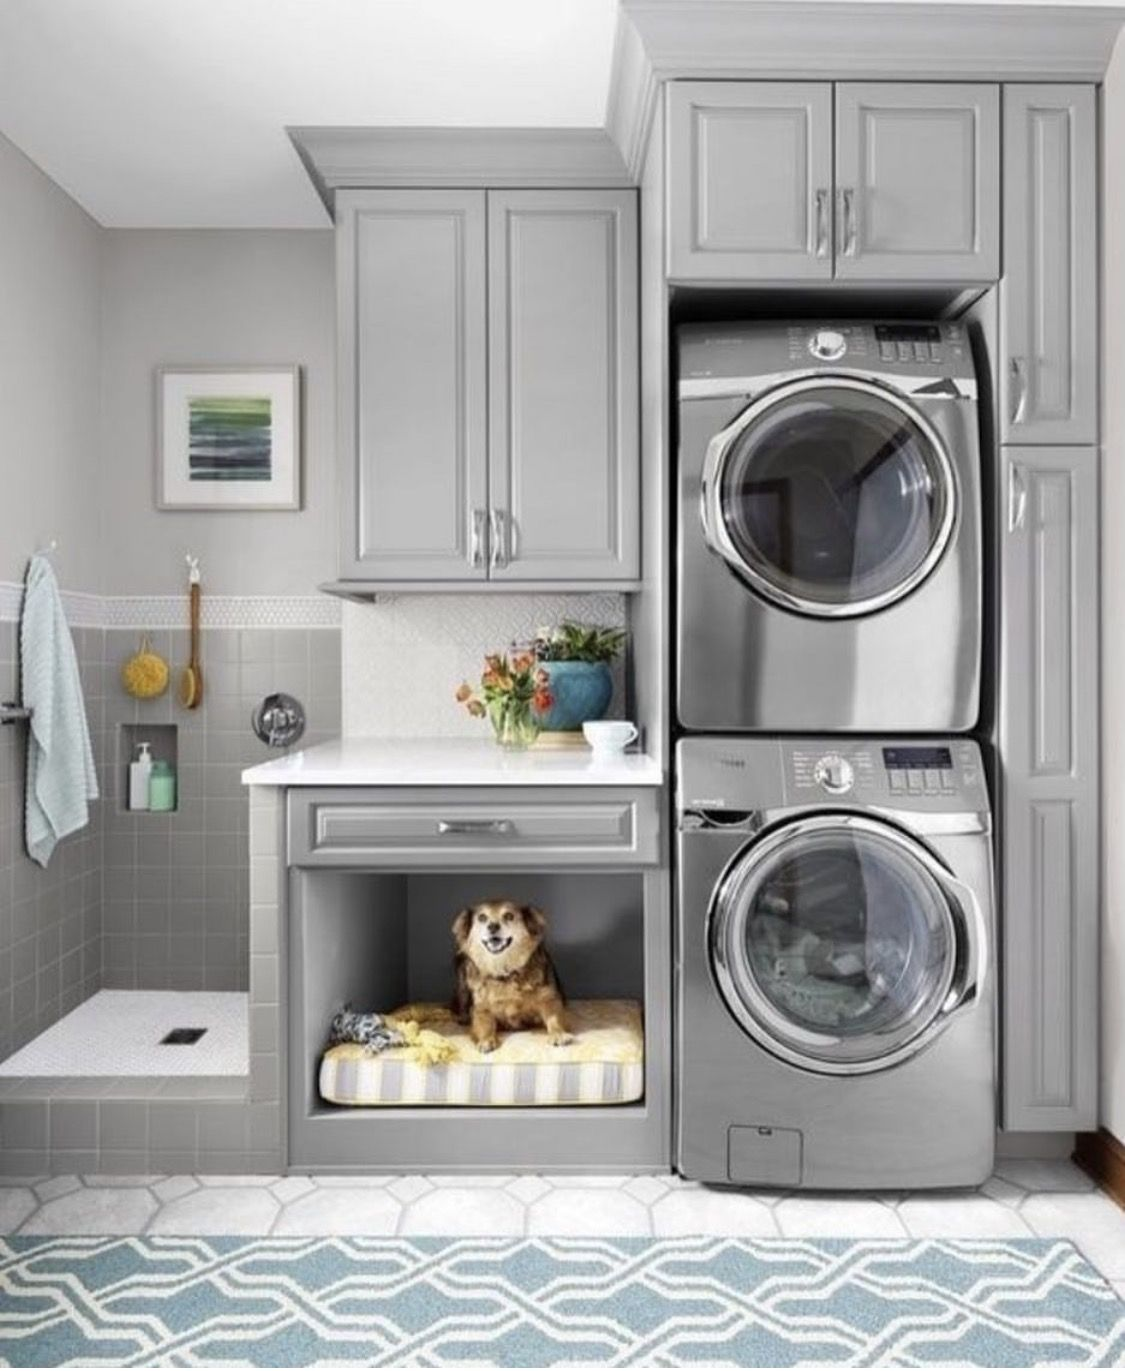 Pin de donna cruz en laundry rooms pinterest lavaderos for Ideas de lavaderos